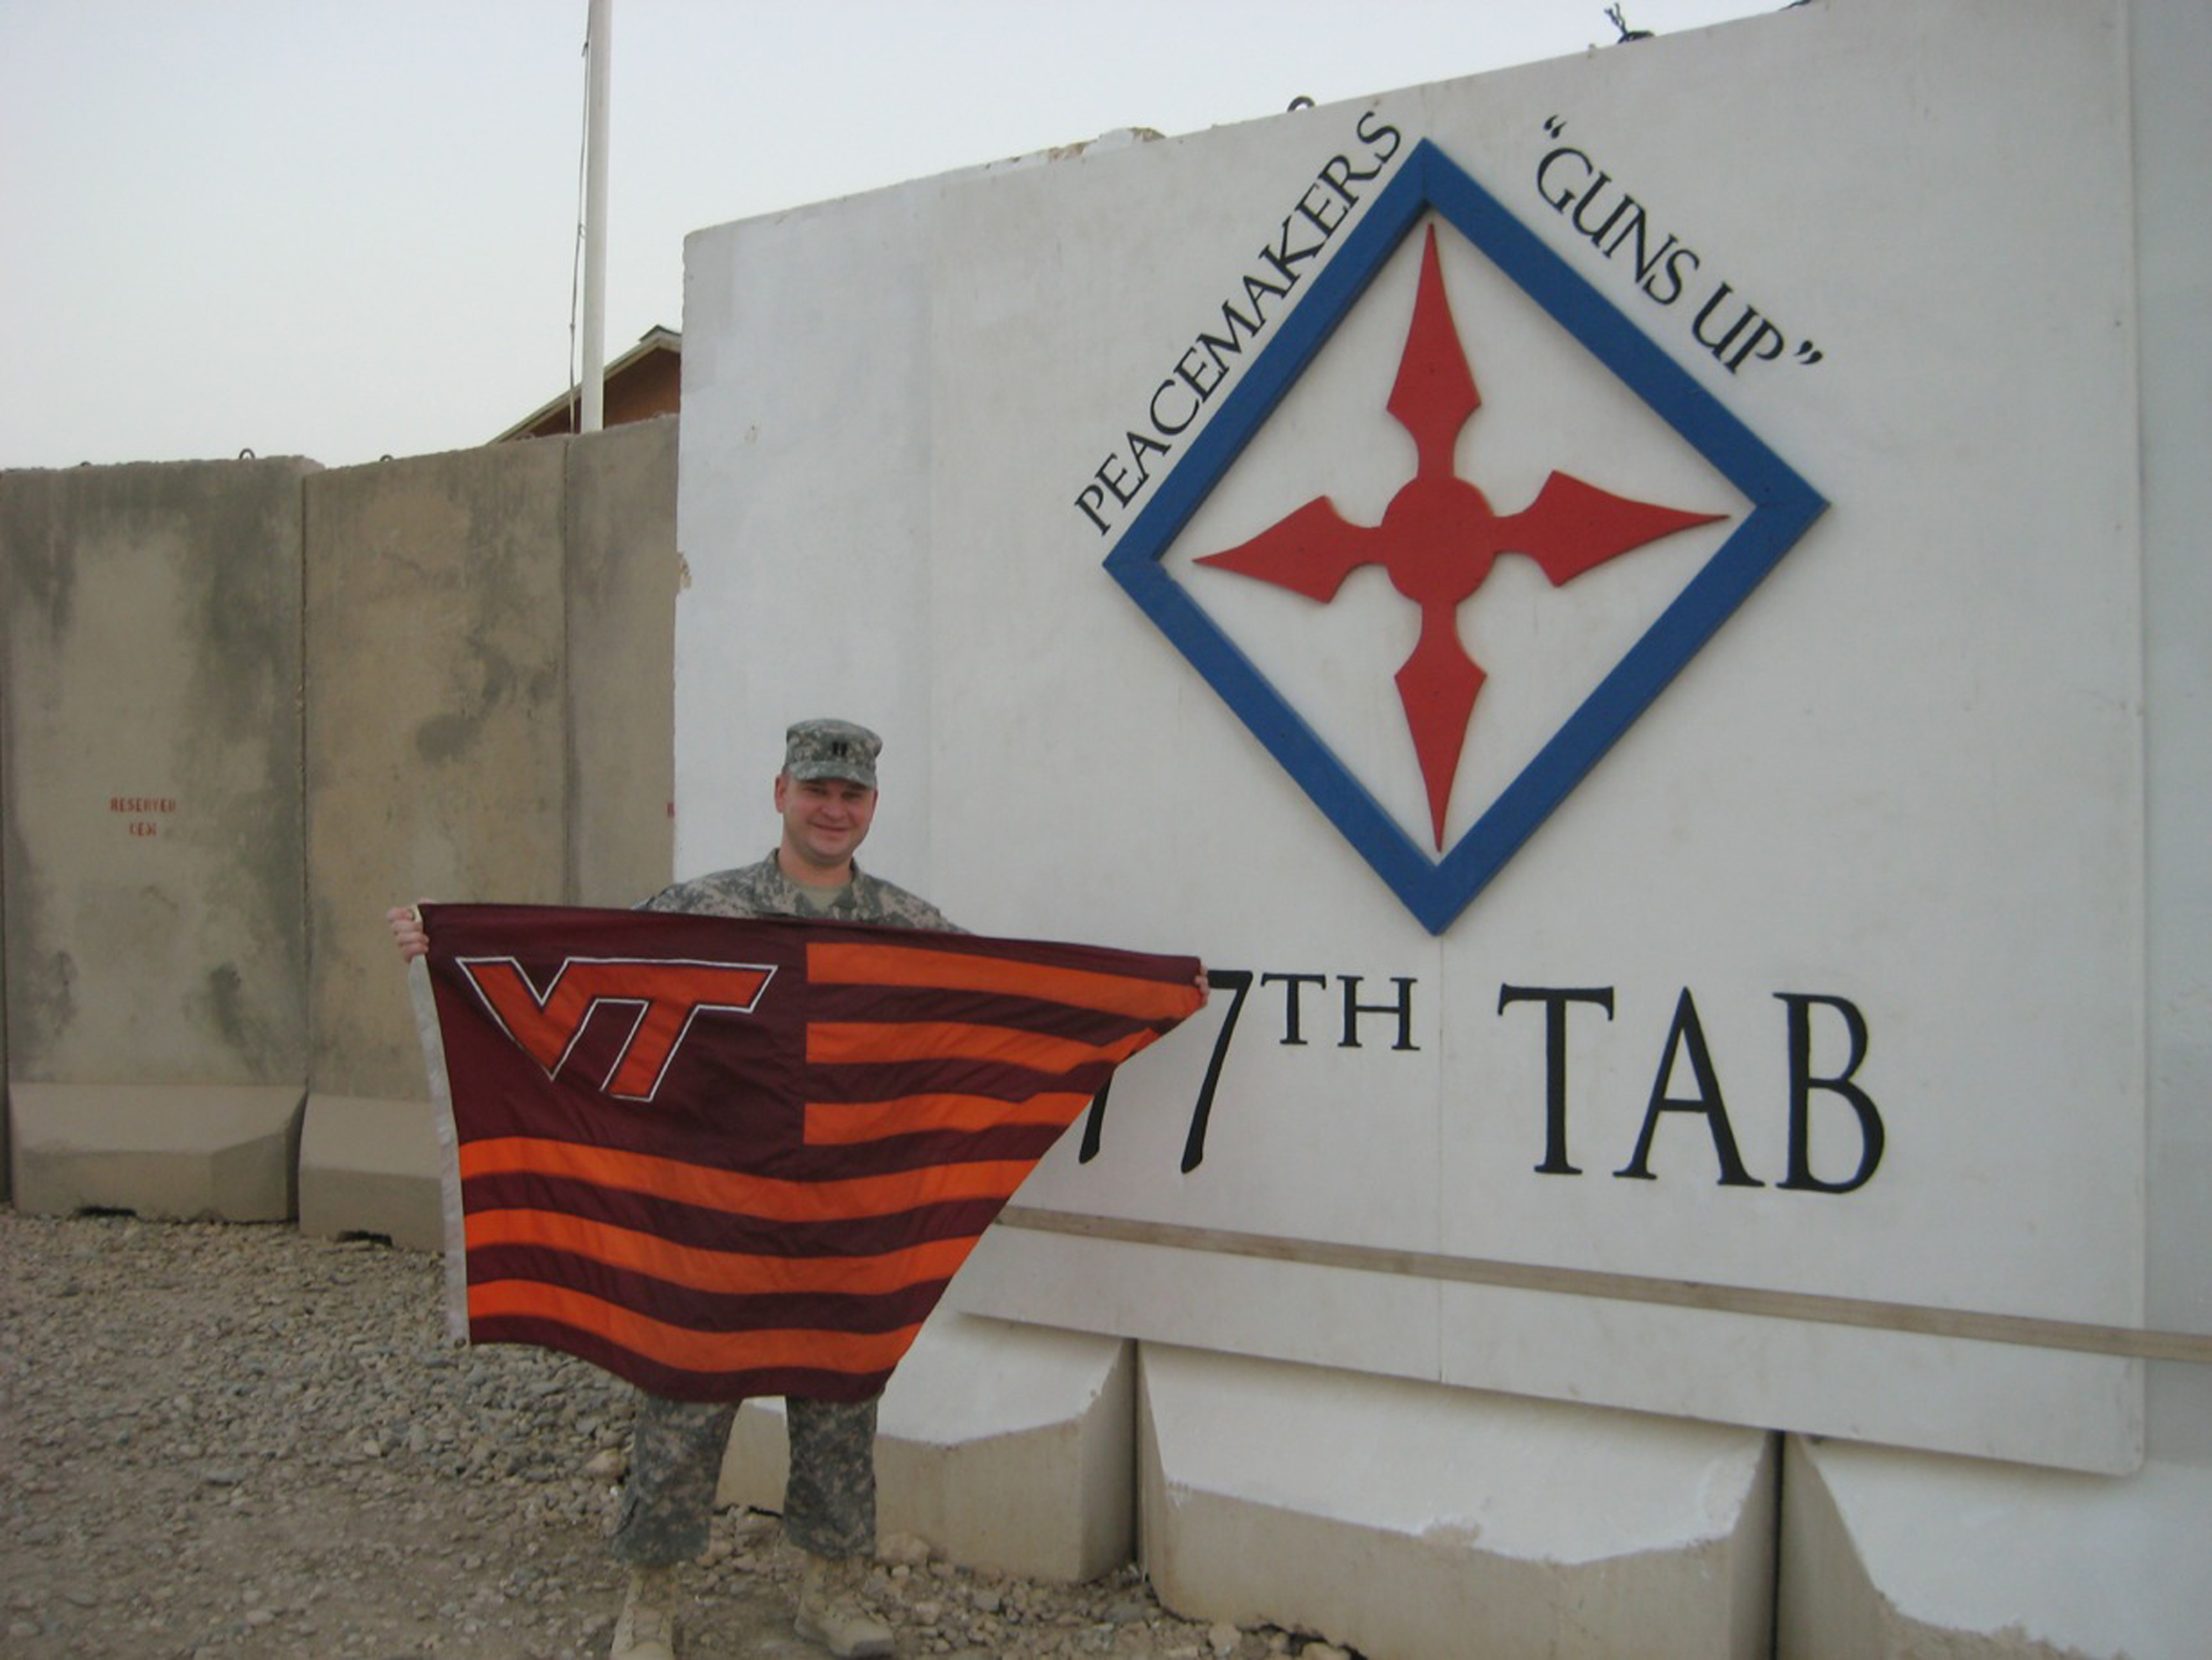 Capt. Danny Kane, U.S. Army, Virginia Tech Corps of Cadets Class of 2002 shown at Operating Base Adder, Iraq